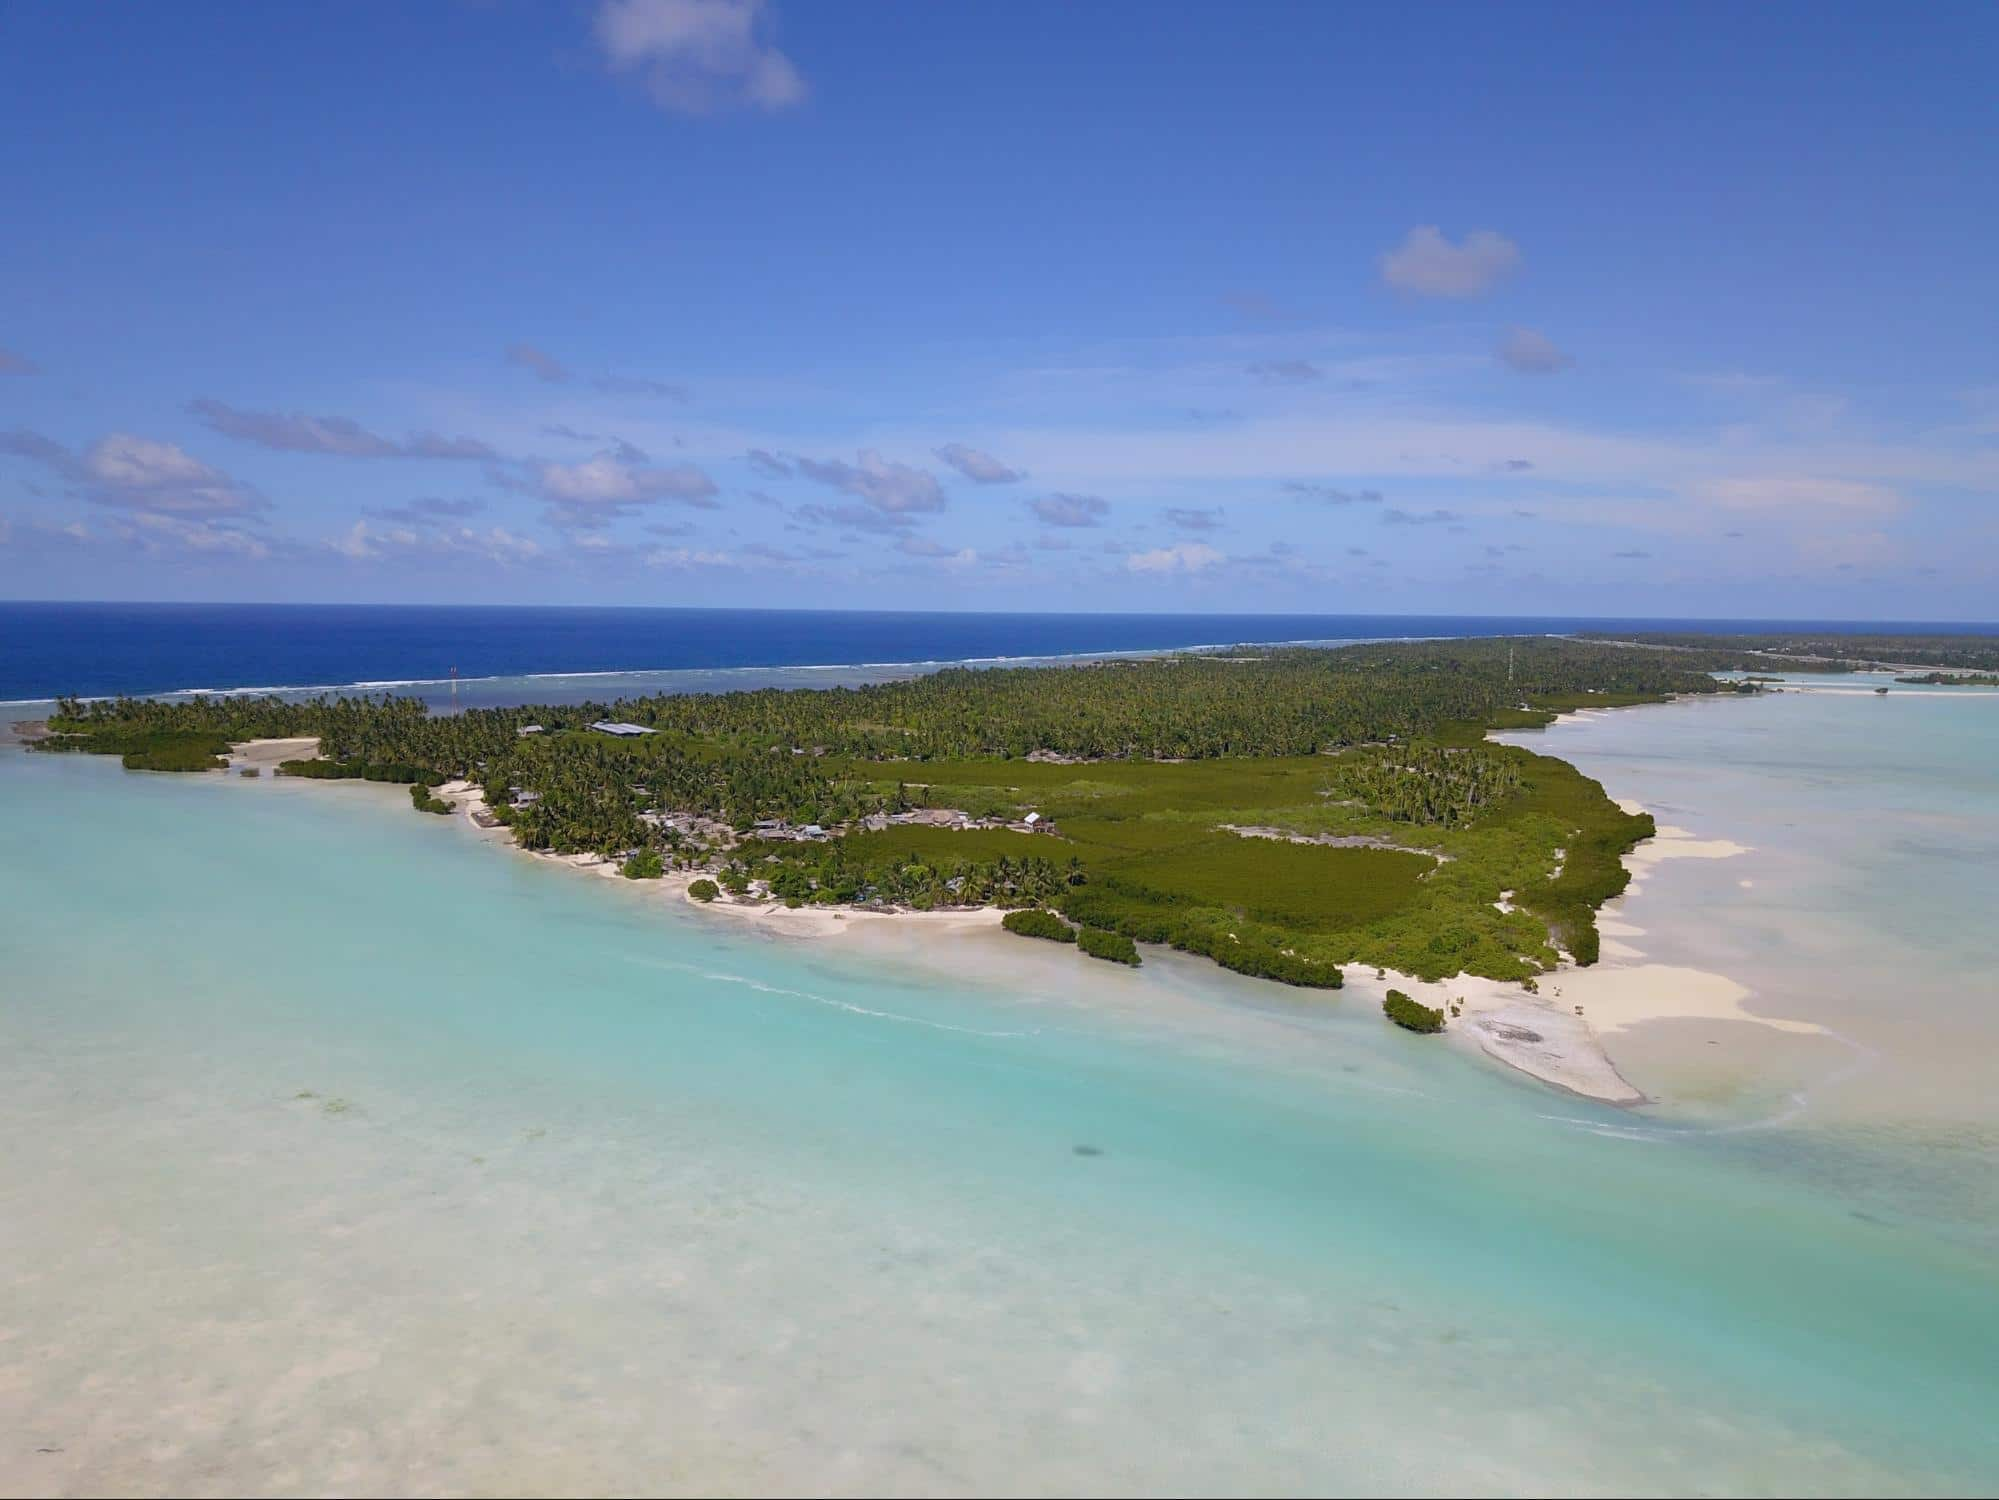 The clear and clean waters of Kiribati